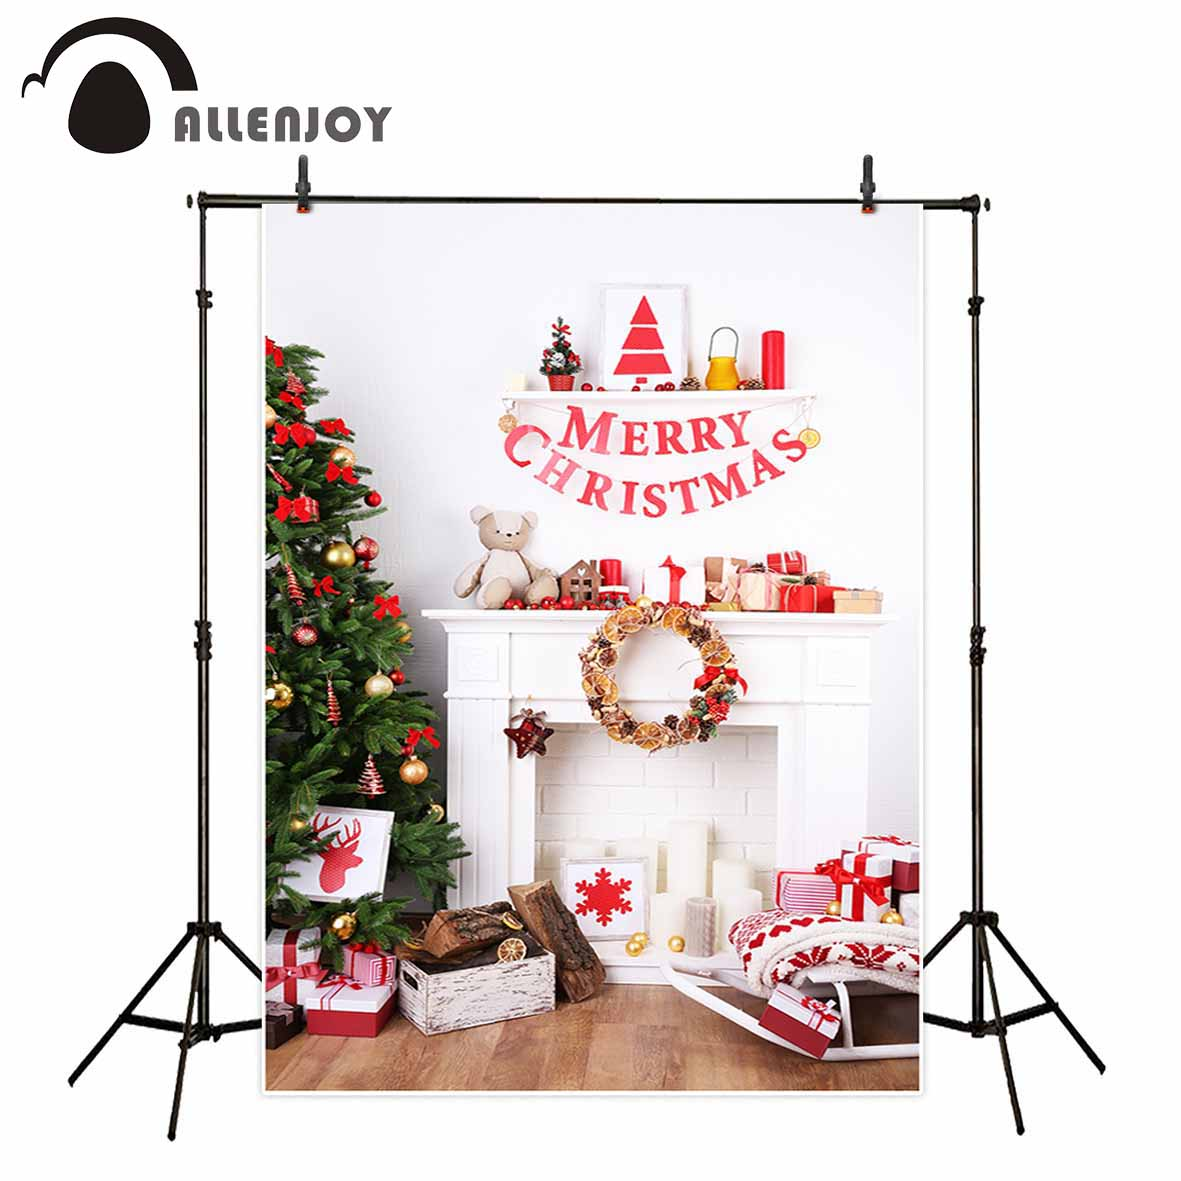 Allenjoy Fireplace Christmas tree celebration gift wreath toy bear backgrounds for photo studio christmas decorations for home allenjoy christmas backdrop tree gift chandelier fireplace cute professional background backdrop for photo studio